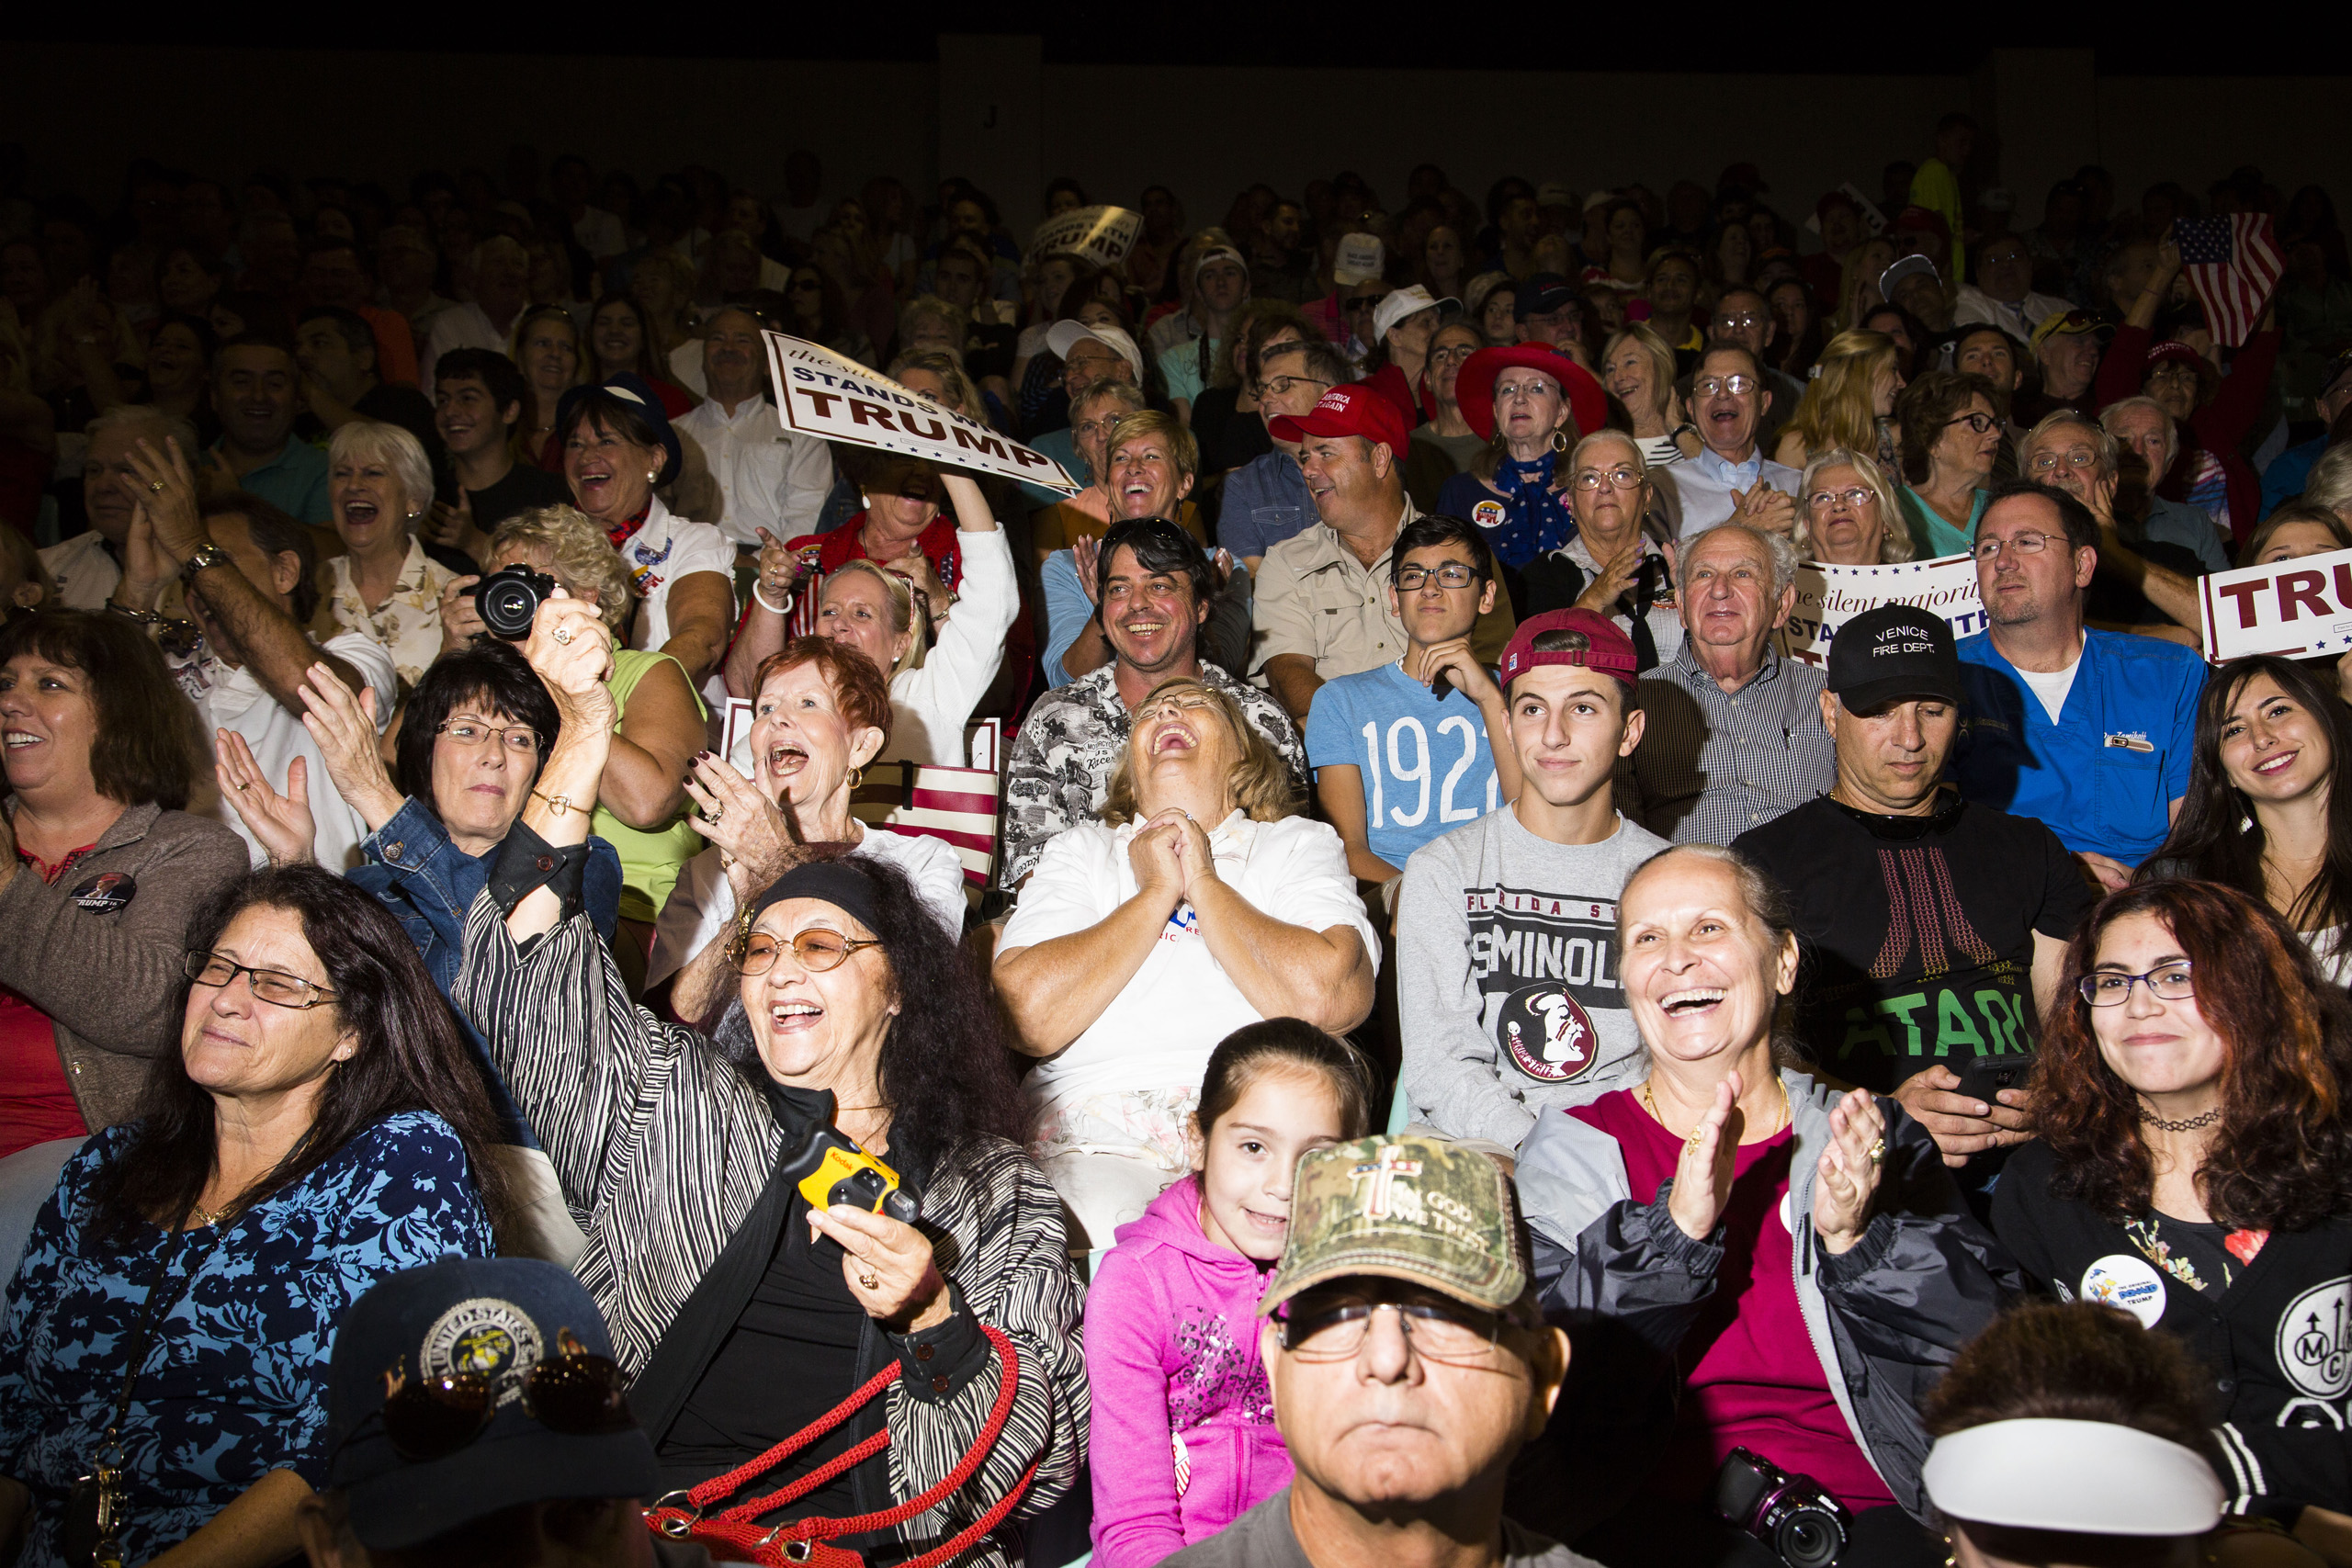 Supporters of Republican presidential candidate Donald Trump react to speakers at a rally in Sarasota, Fla. Nov. 28, 2015.